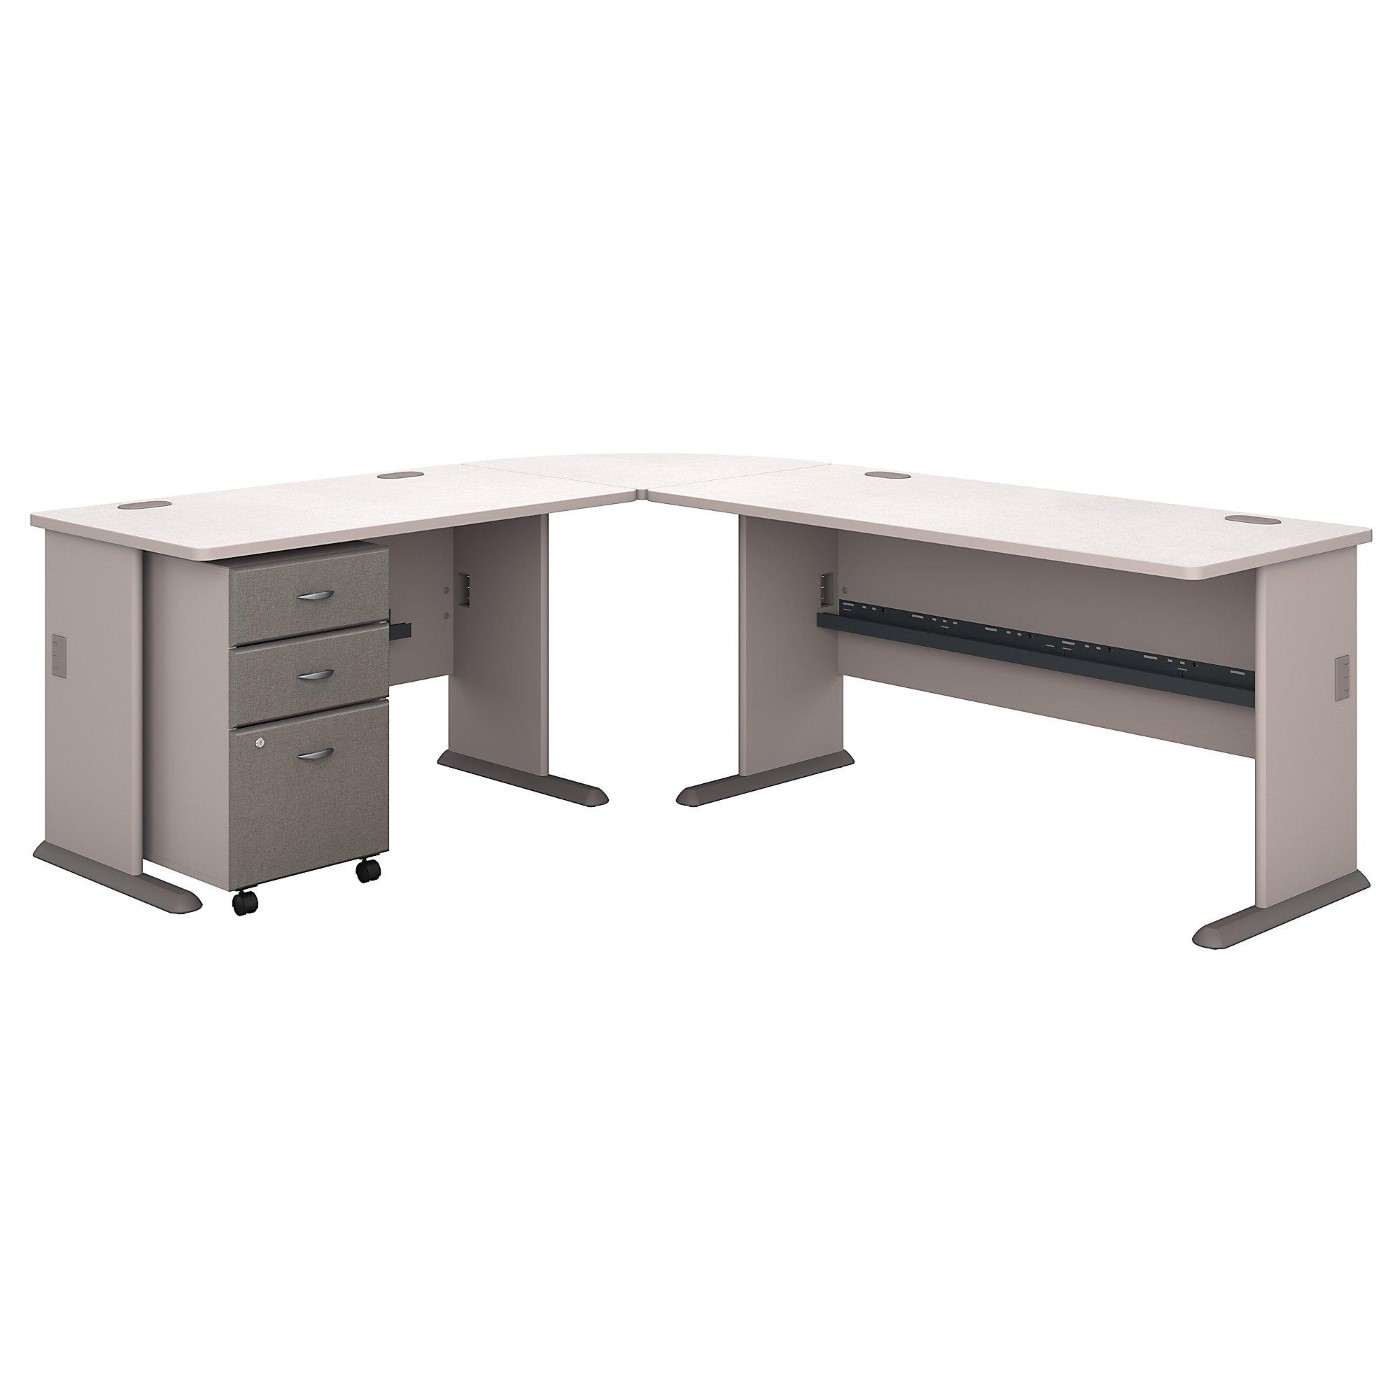 BUSH BUSINESS FURNITURE SERIES A 87W X 75D L SHAPED DESK WITH MOBILE FILE CABINET. FREE SHIPPING</font></b></font></b>&#x1F384<font color=red><b>ERGONOMICHOME HOLIDAY SALE - ENDS DEC. 17, 2019</b></font>&#x1F384